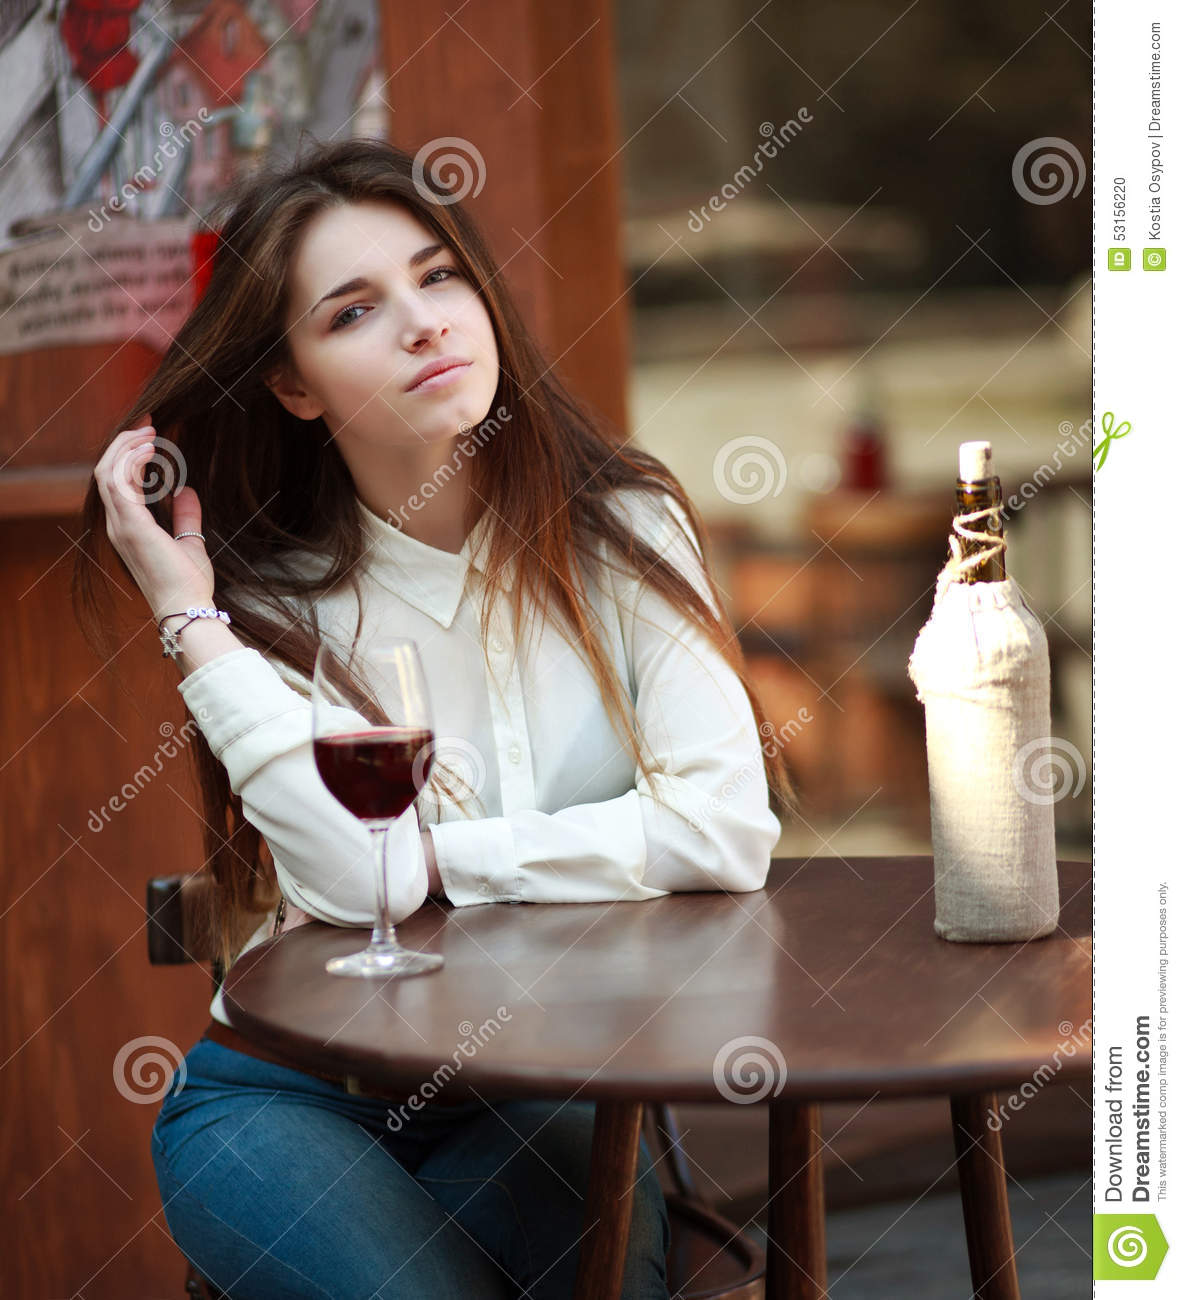 Young girl sitting at table in summer cafe with glass of wine